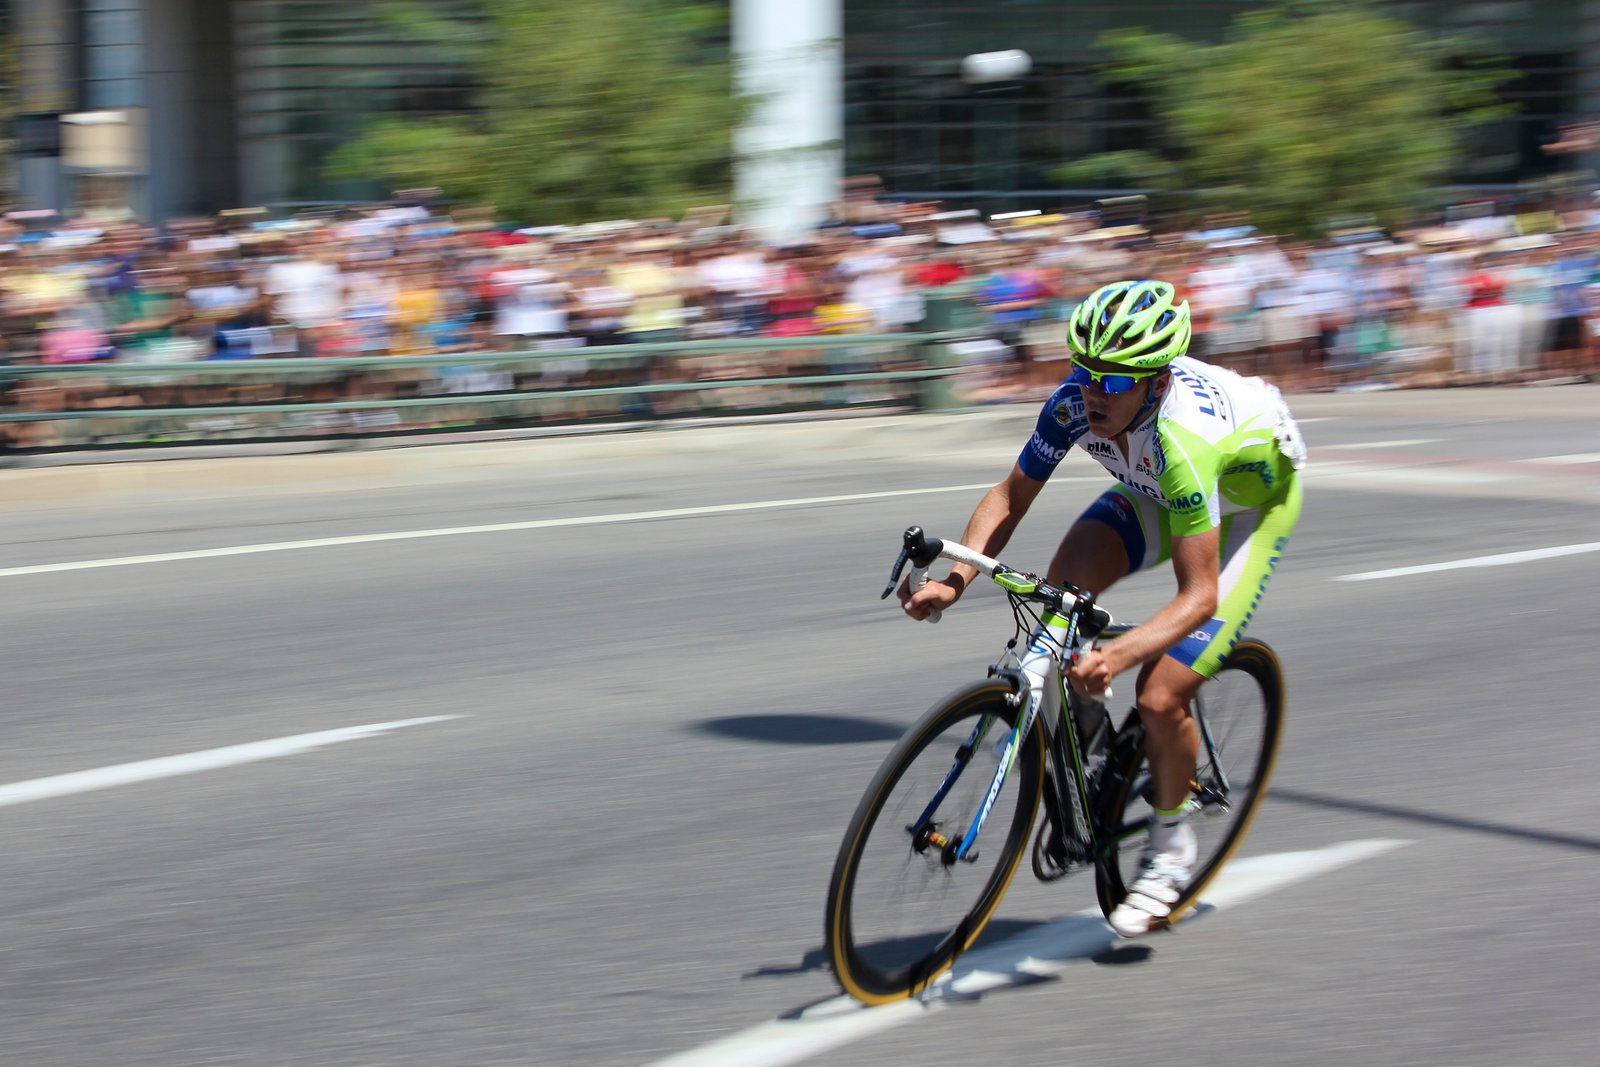 Shot from Pro Cycling Challenge 2011